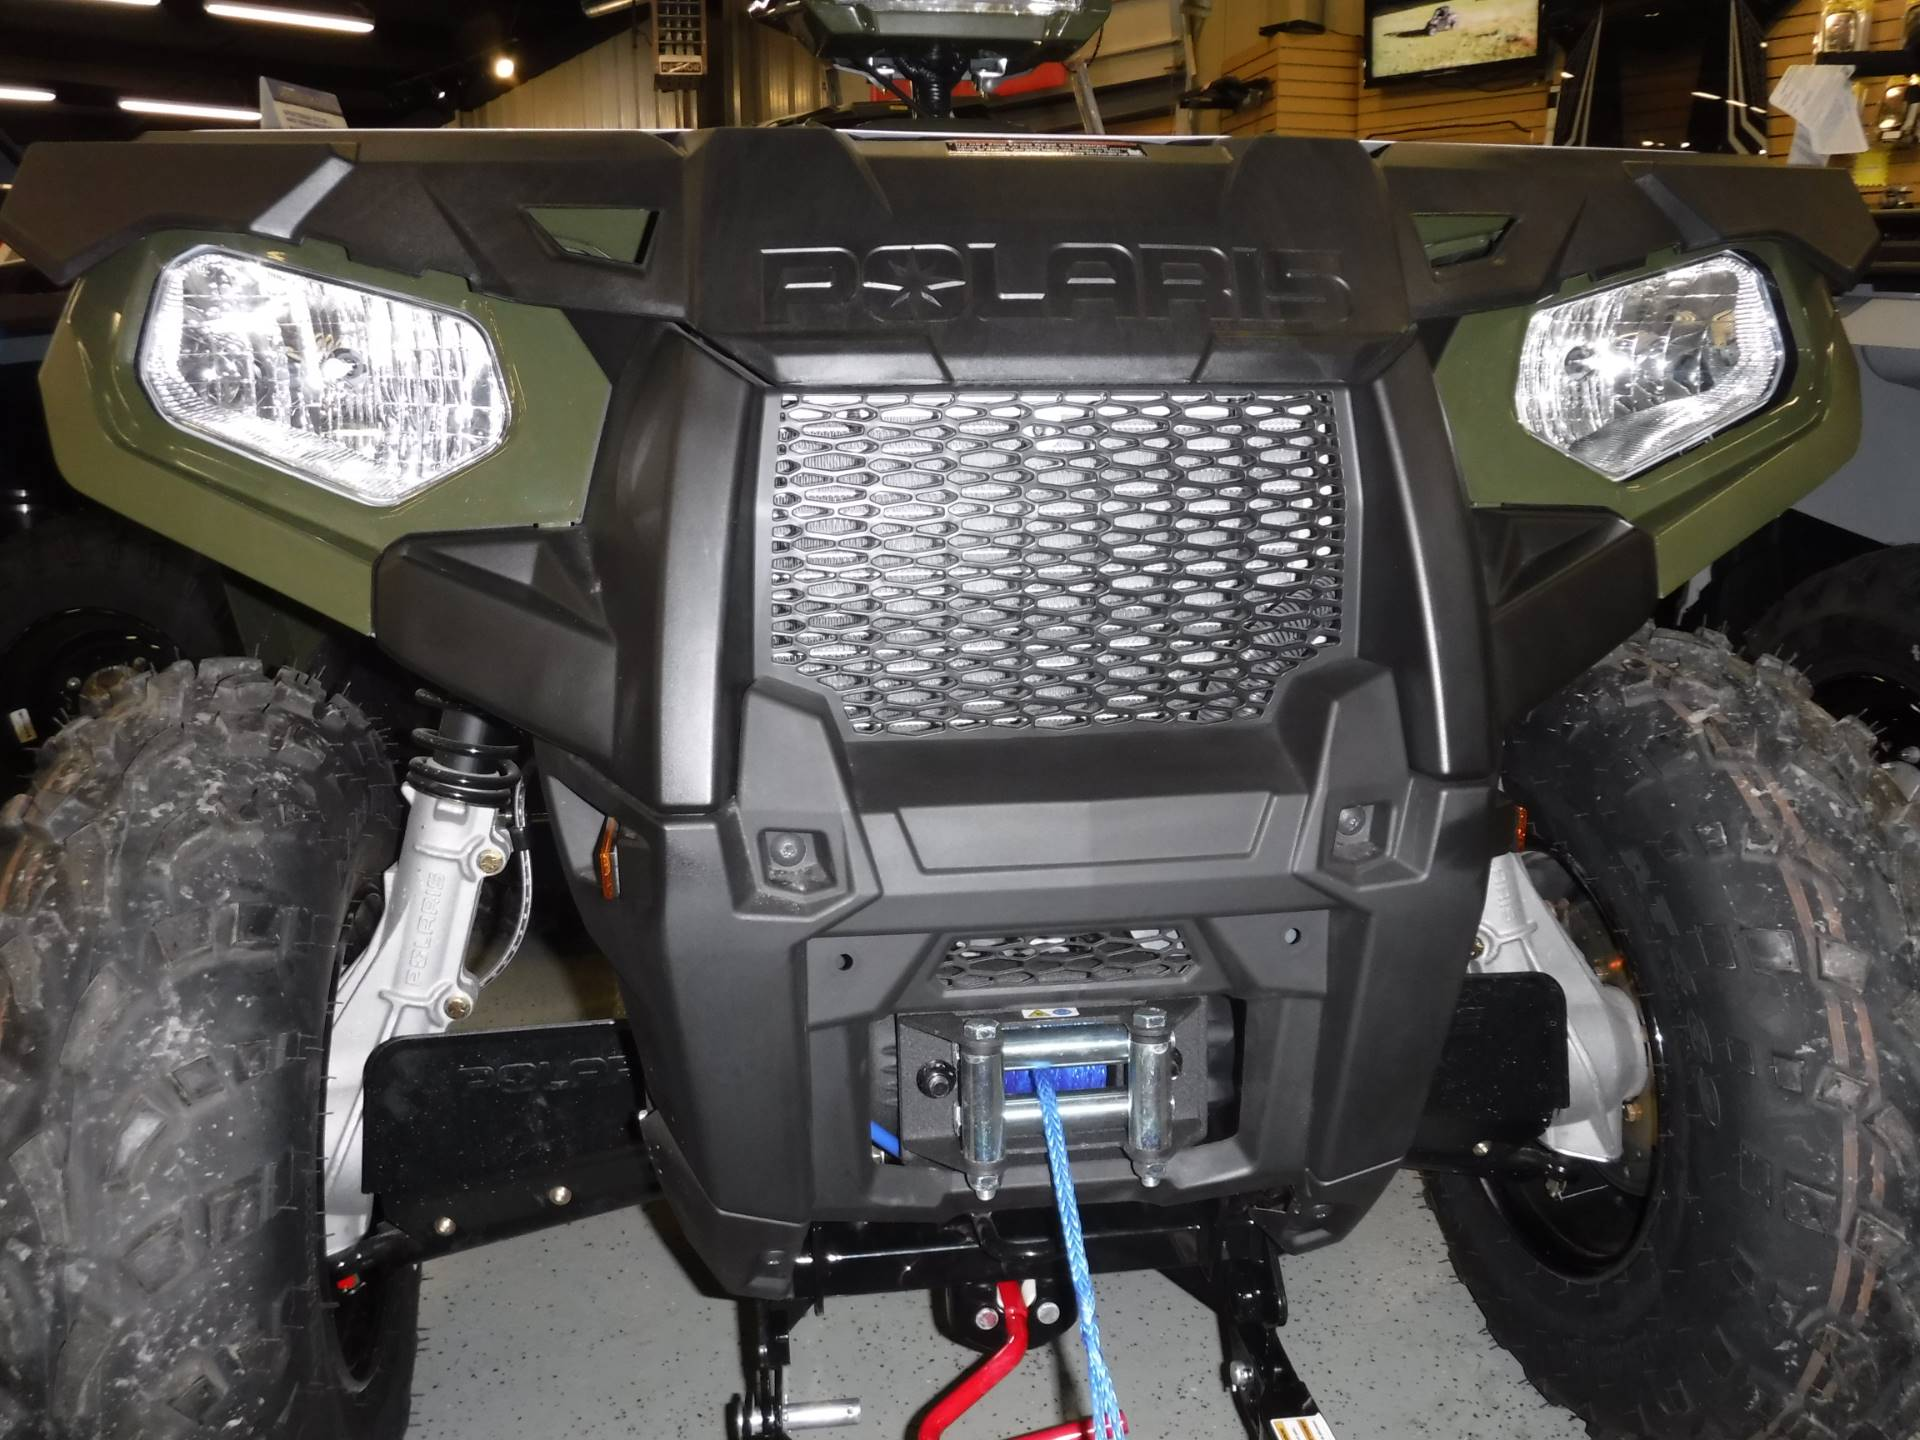 2018 Polaris Sportsman 570 4